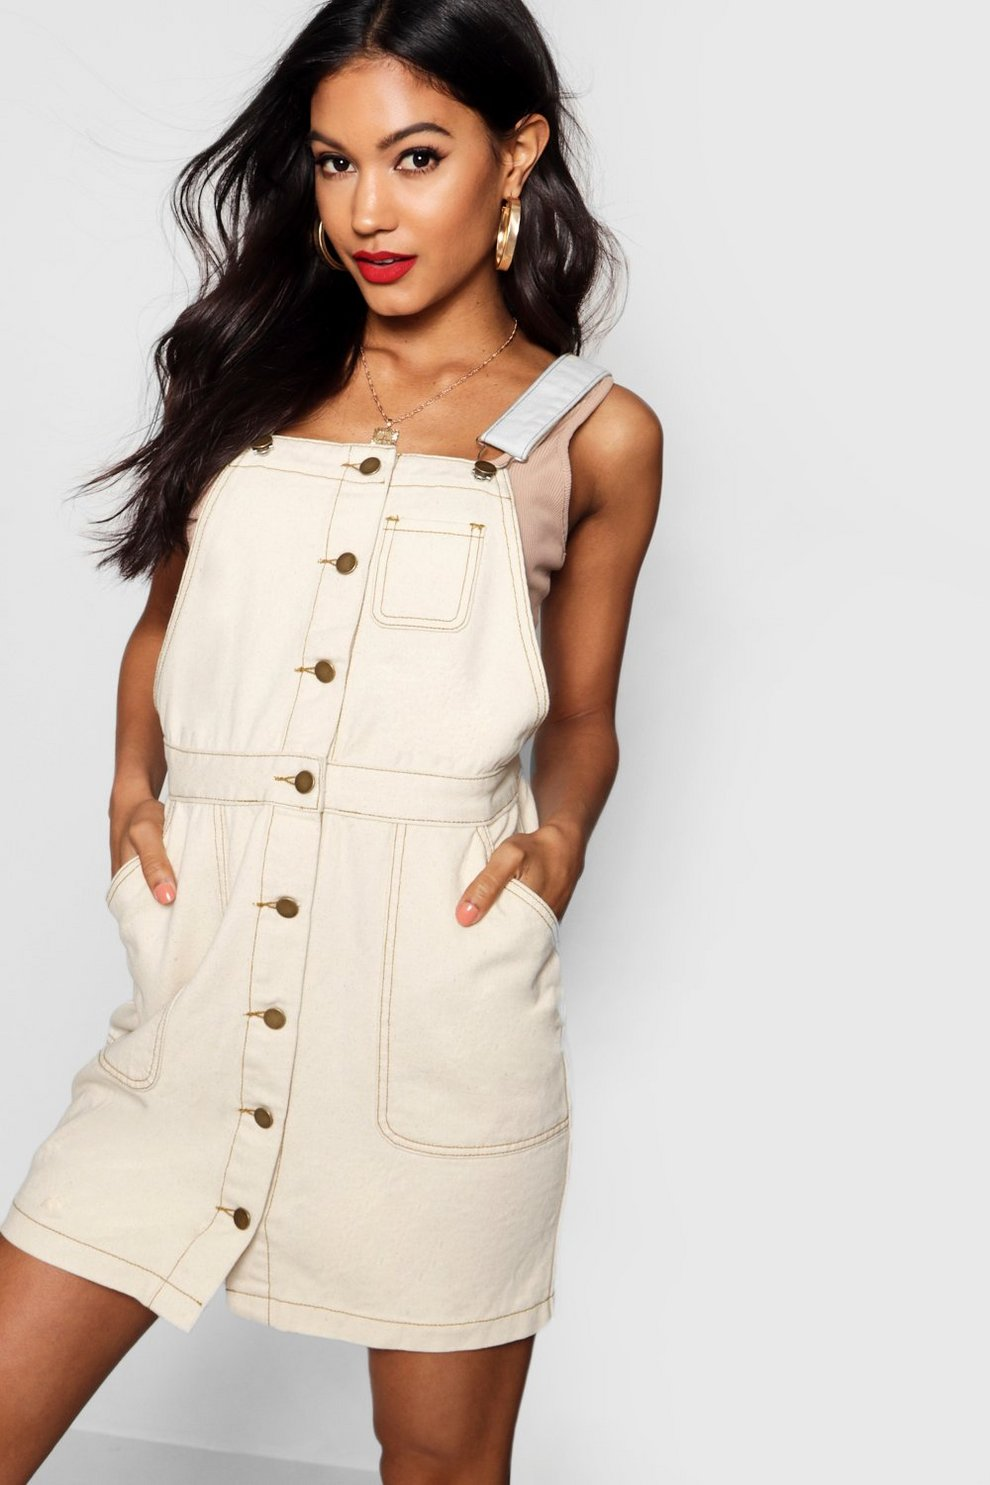 Boohoo Ecru Contrast Stitch Pinafore Denim Dress Sale Online Store Free Shipping Geniue Stockist Discounts Free Shipping Footlocker Pictures uNYouAlSL6